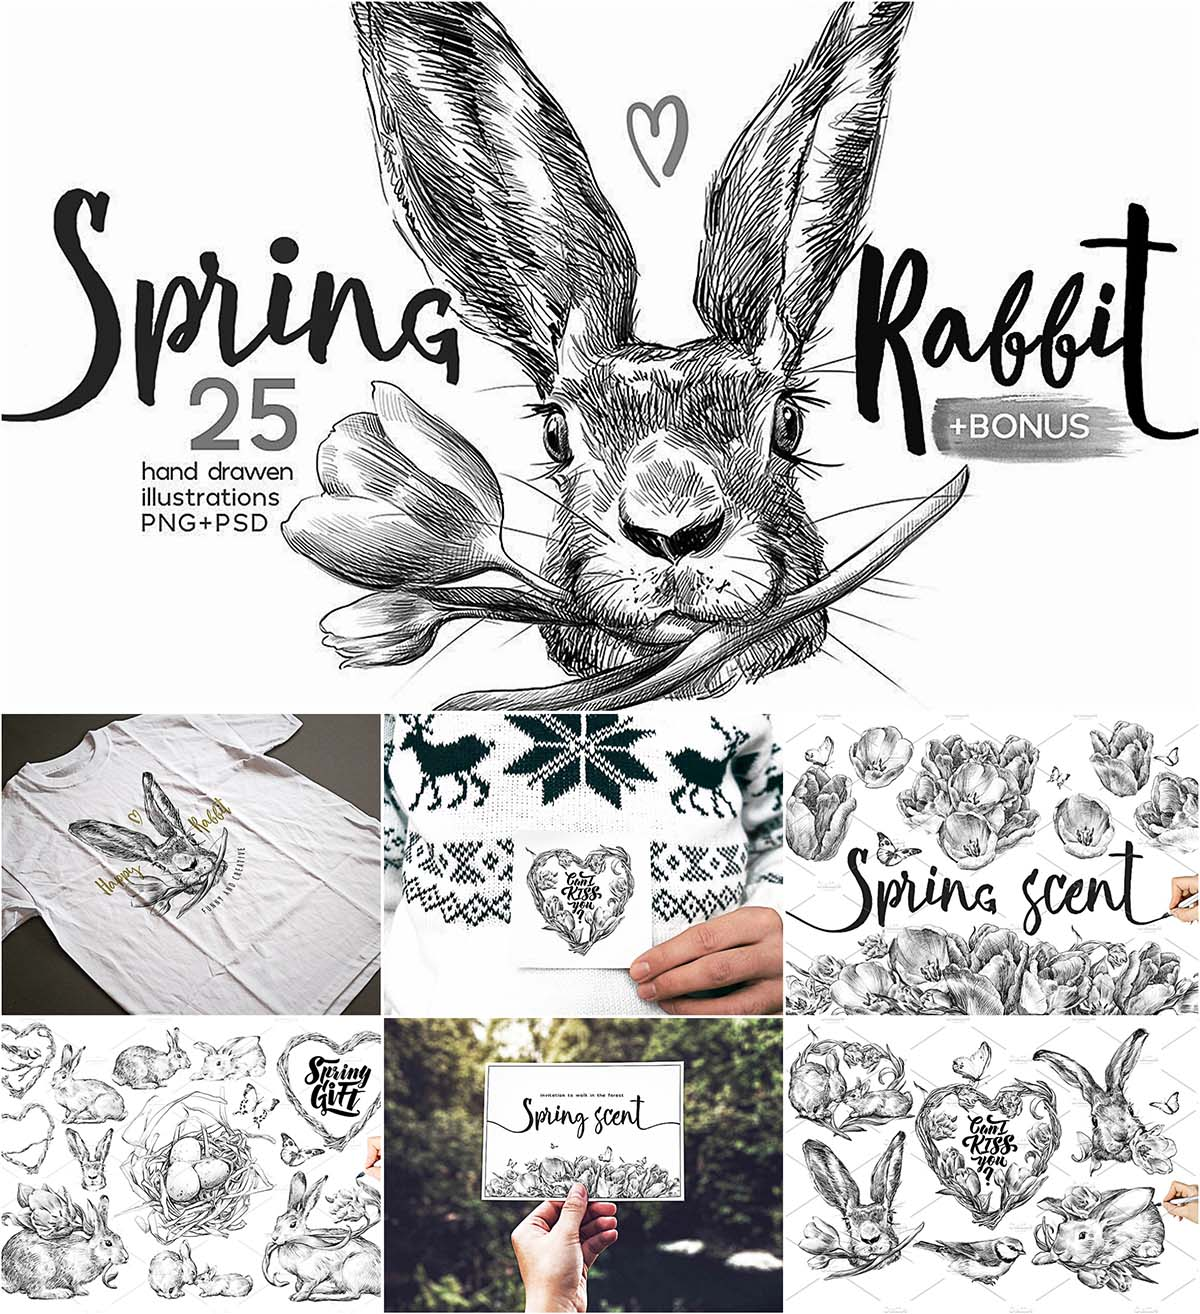 Spring rabbit illustration postcard